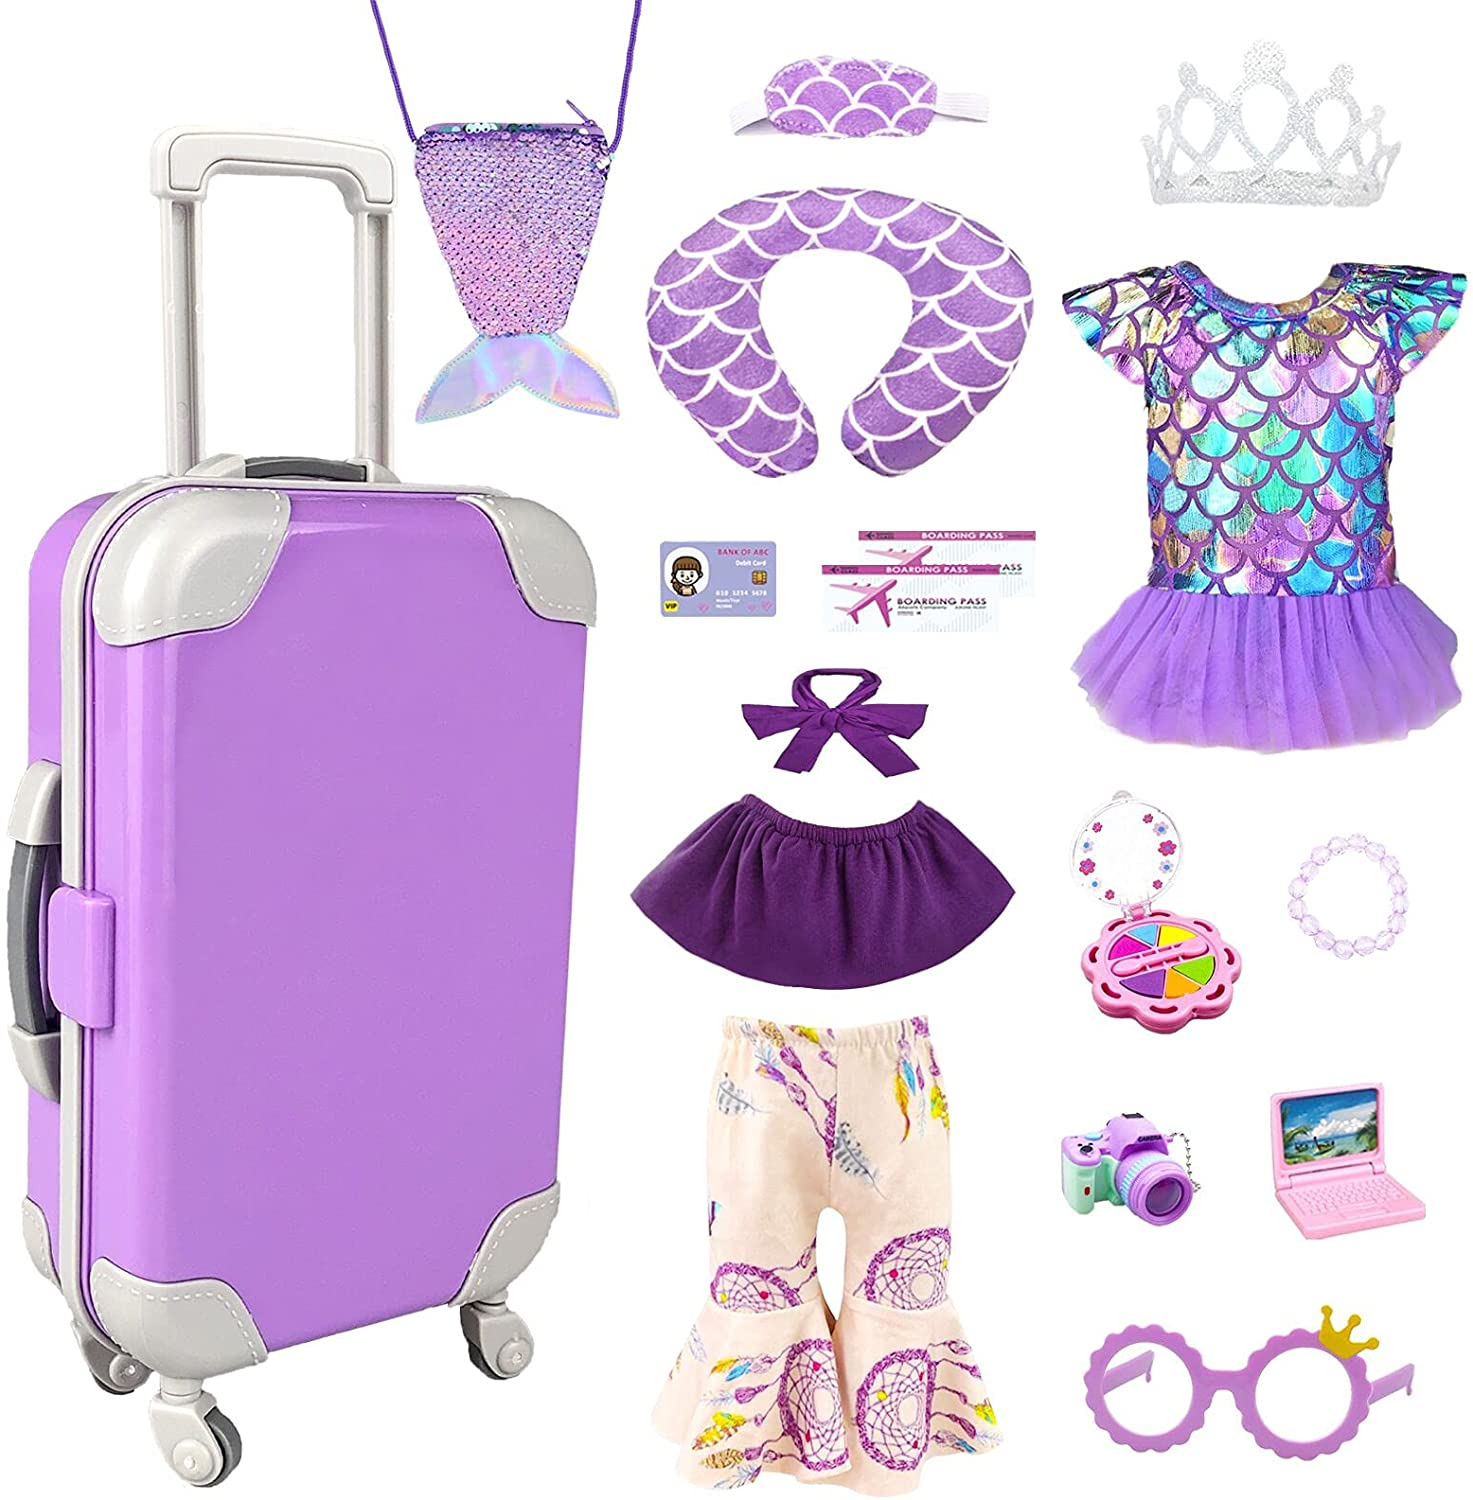 American Doll Clothes and Accessories - 18 Inch Doll Travel Play Set Luggage, American Doll Stuff with 18 Inch Doll Clothes, Cute Bag, Swimsuit and Travel Pillow for Girls Doll Costumes Girls Gifts